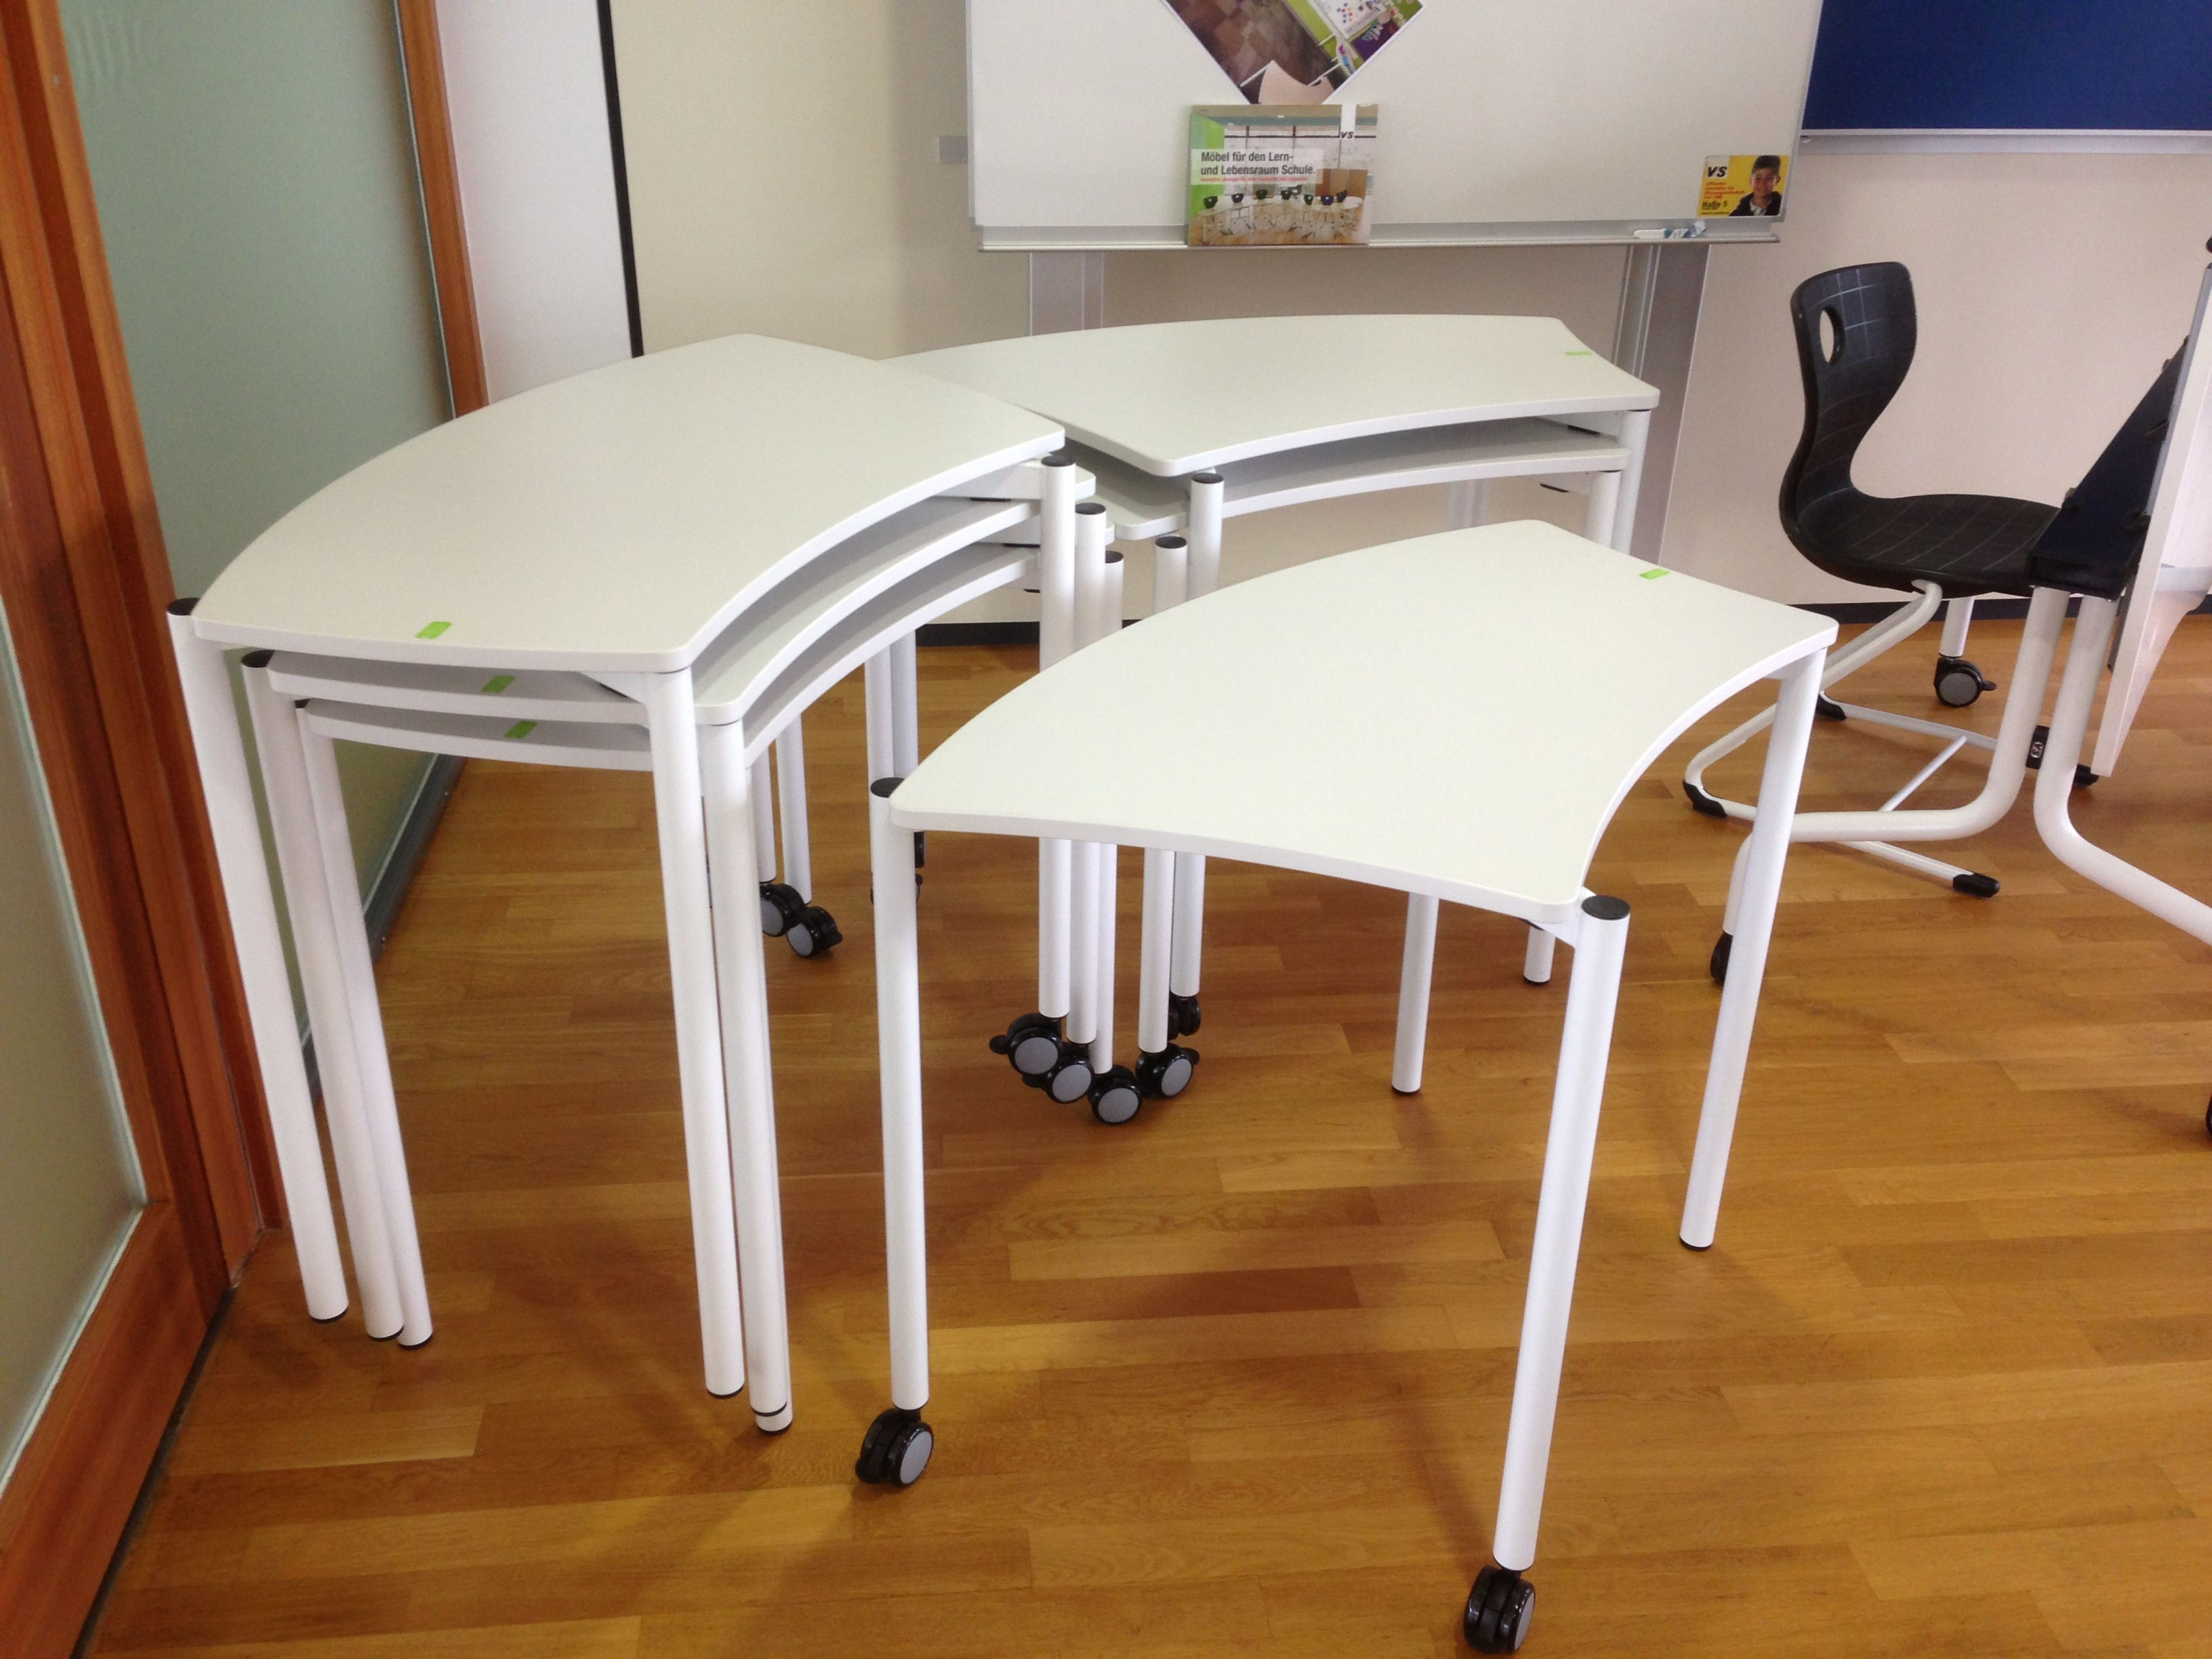 Vs cultural shift thumbprint student desks they stack - Easy to move couch ...